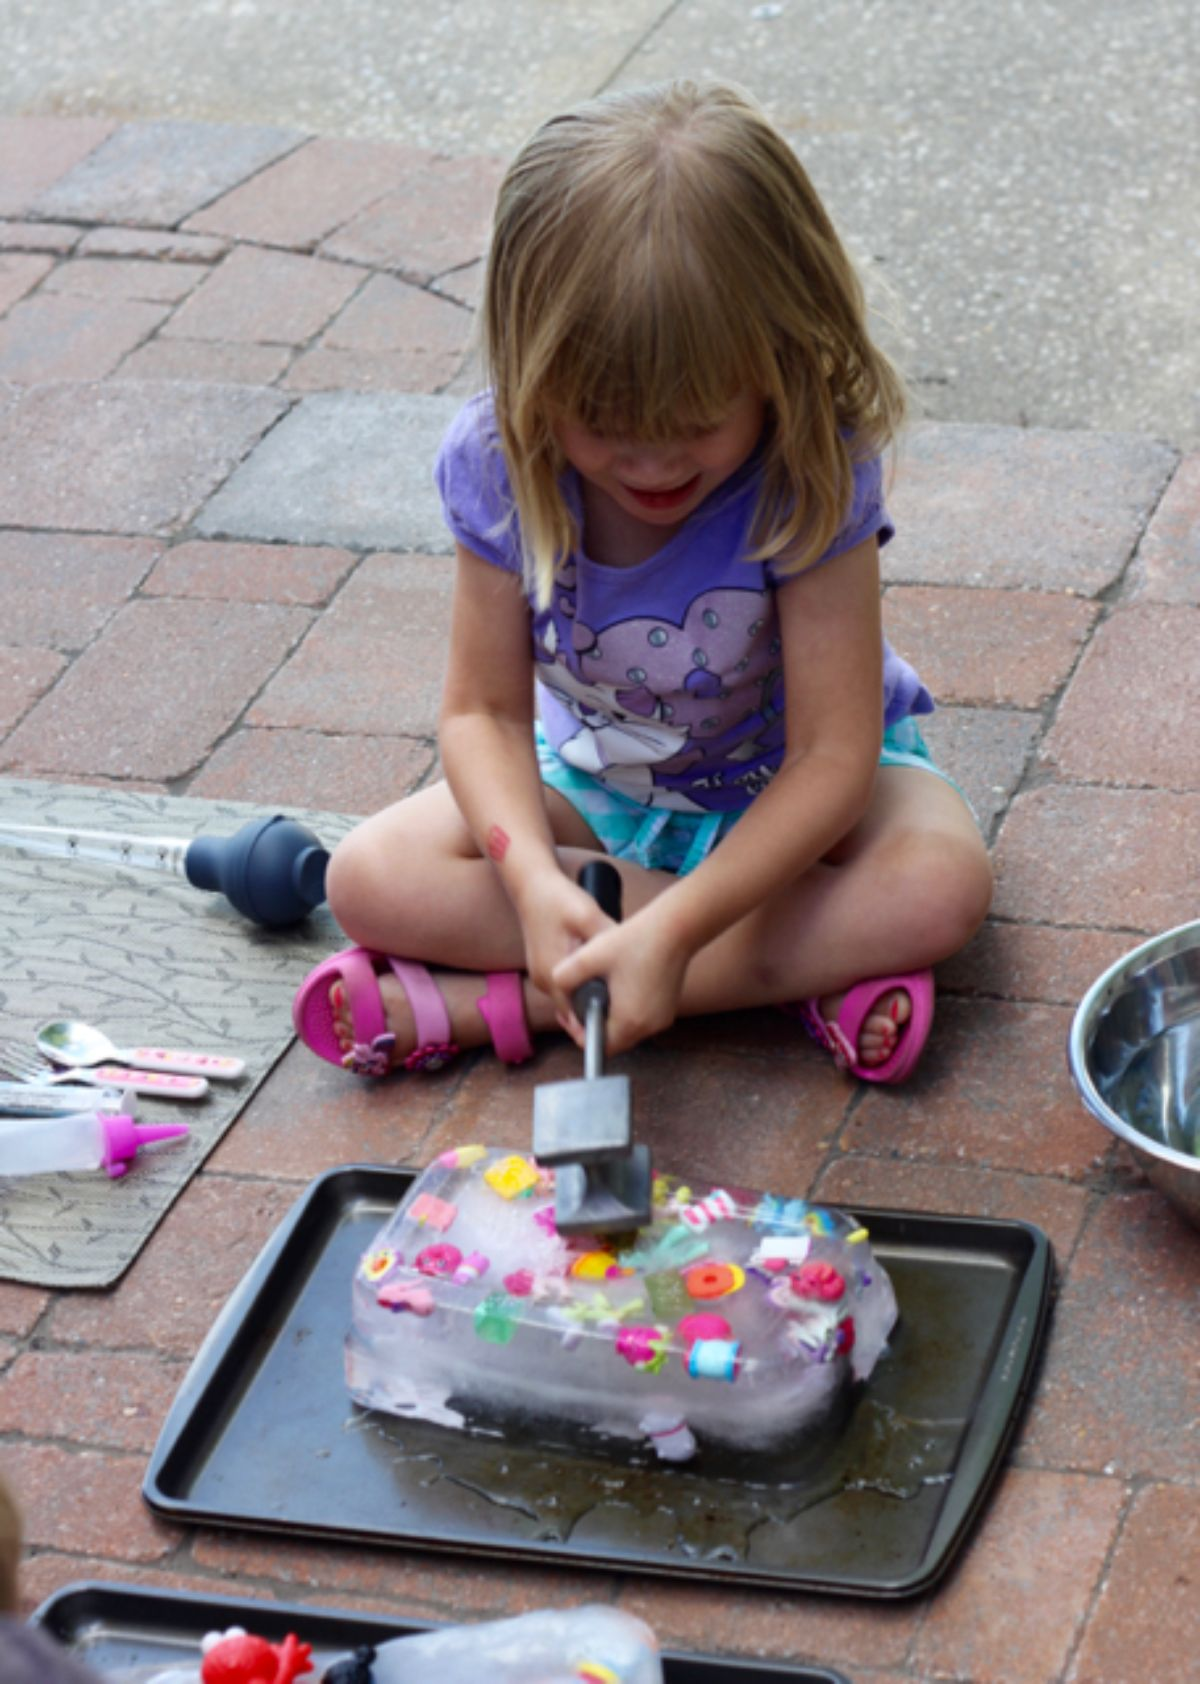 a girl sits on the floor on the backyard. In front of her is a tray with a giant ice block filled with small colorful toys